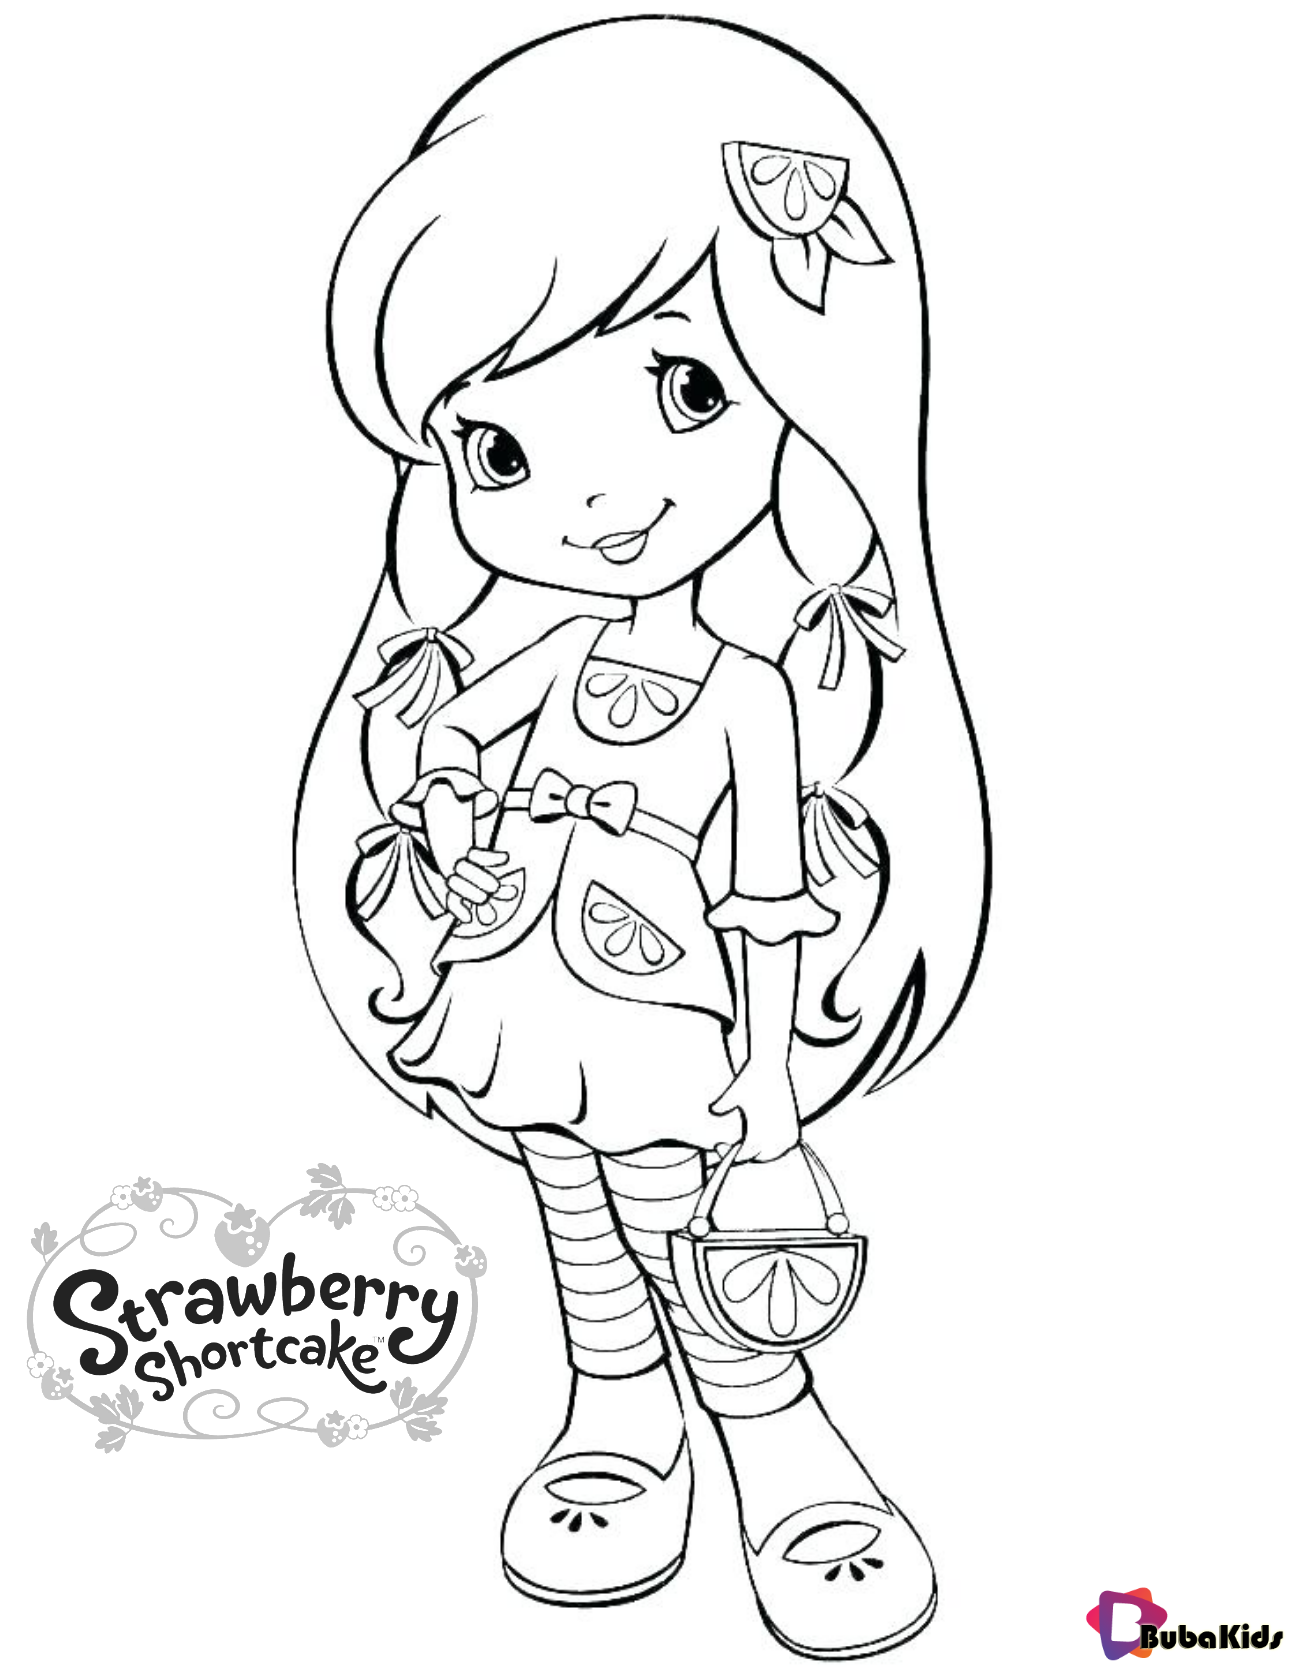 Plum Pudding Strawberry Shortcake Character Free Printable Coloring Page Bubakids C Strawberry Shortcake Coloring Pages Cartoon Coloring Pages Coloring Pages